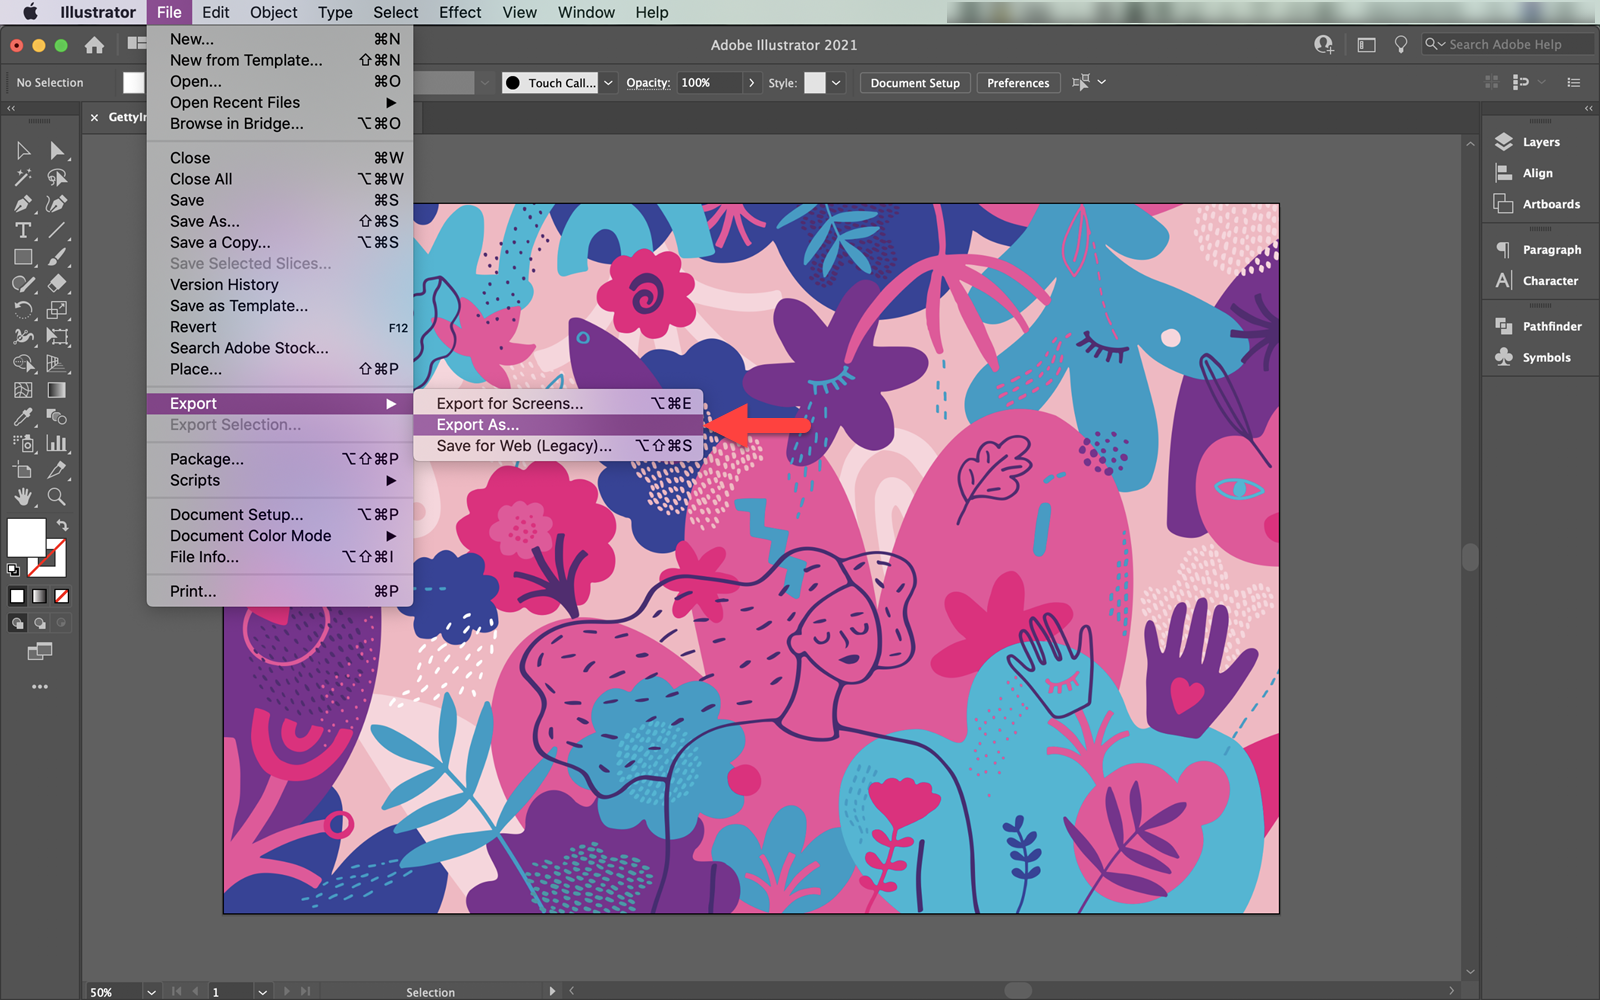 Exporting an AI image file in Adobe Illustrator for Mac